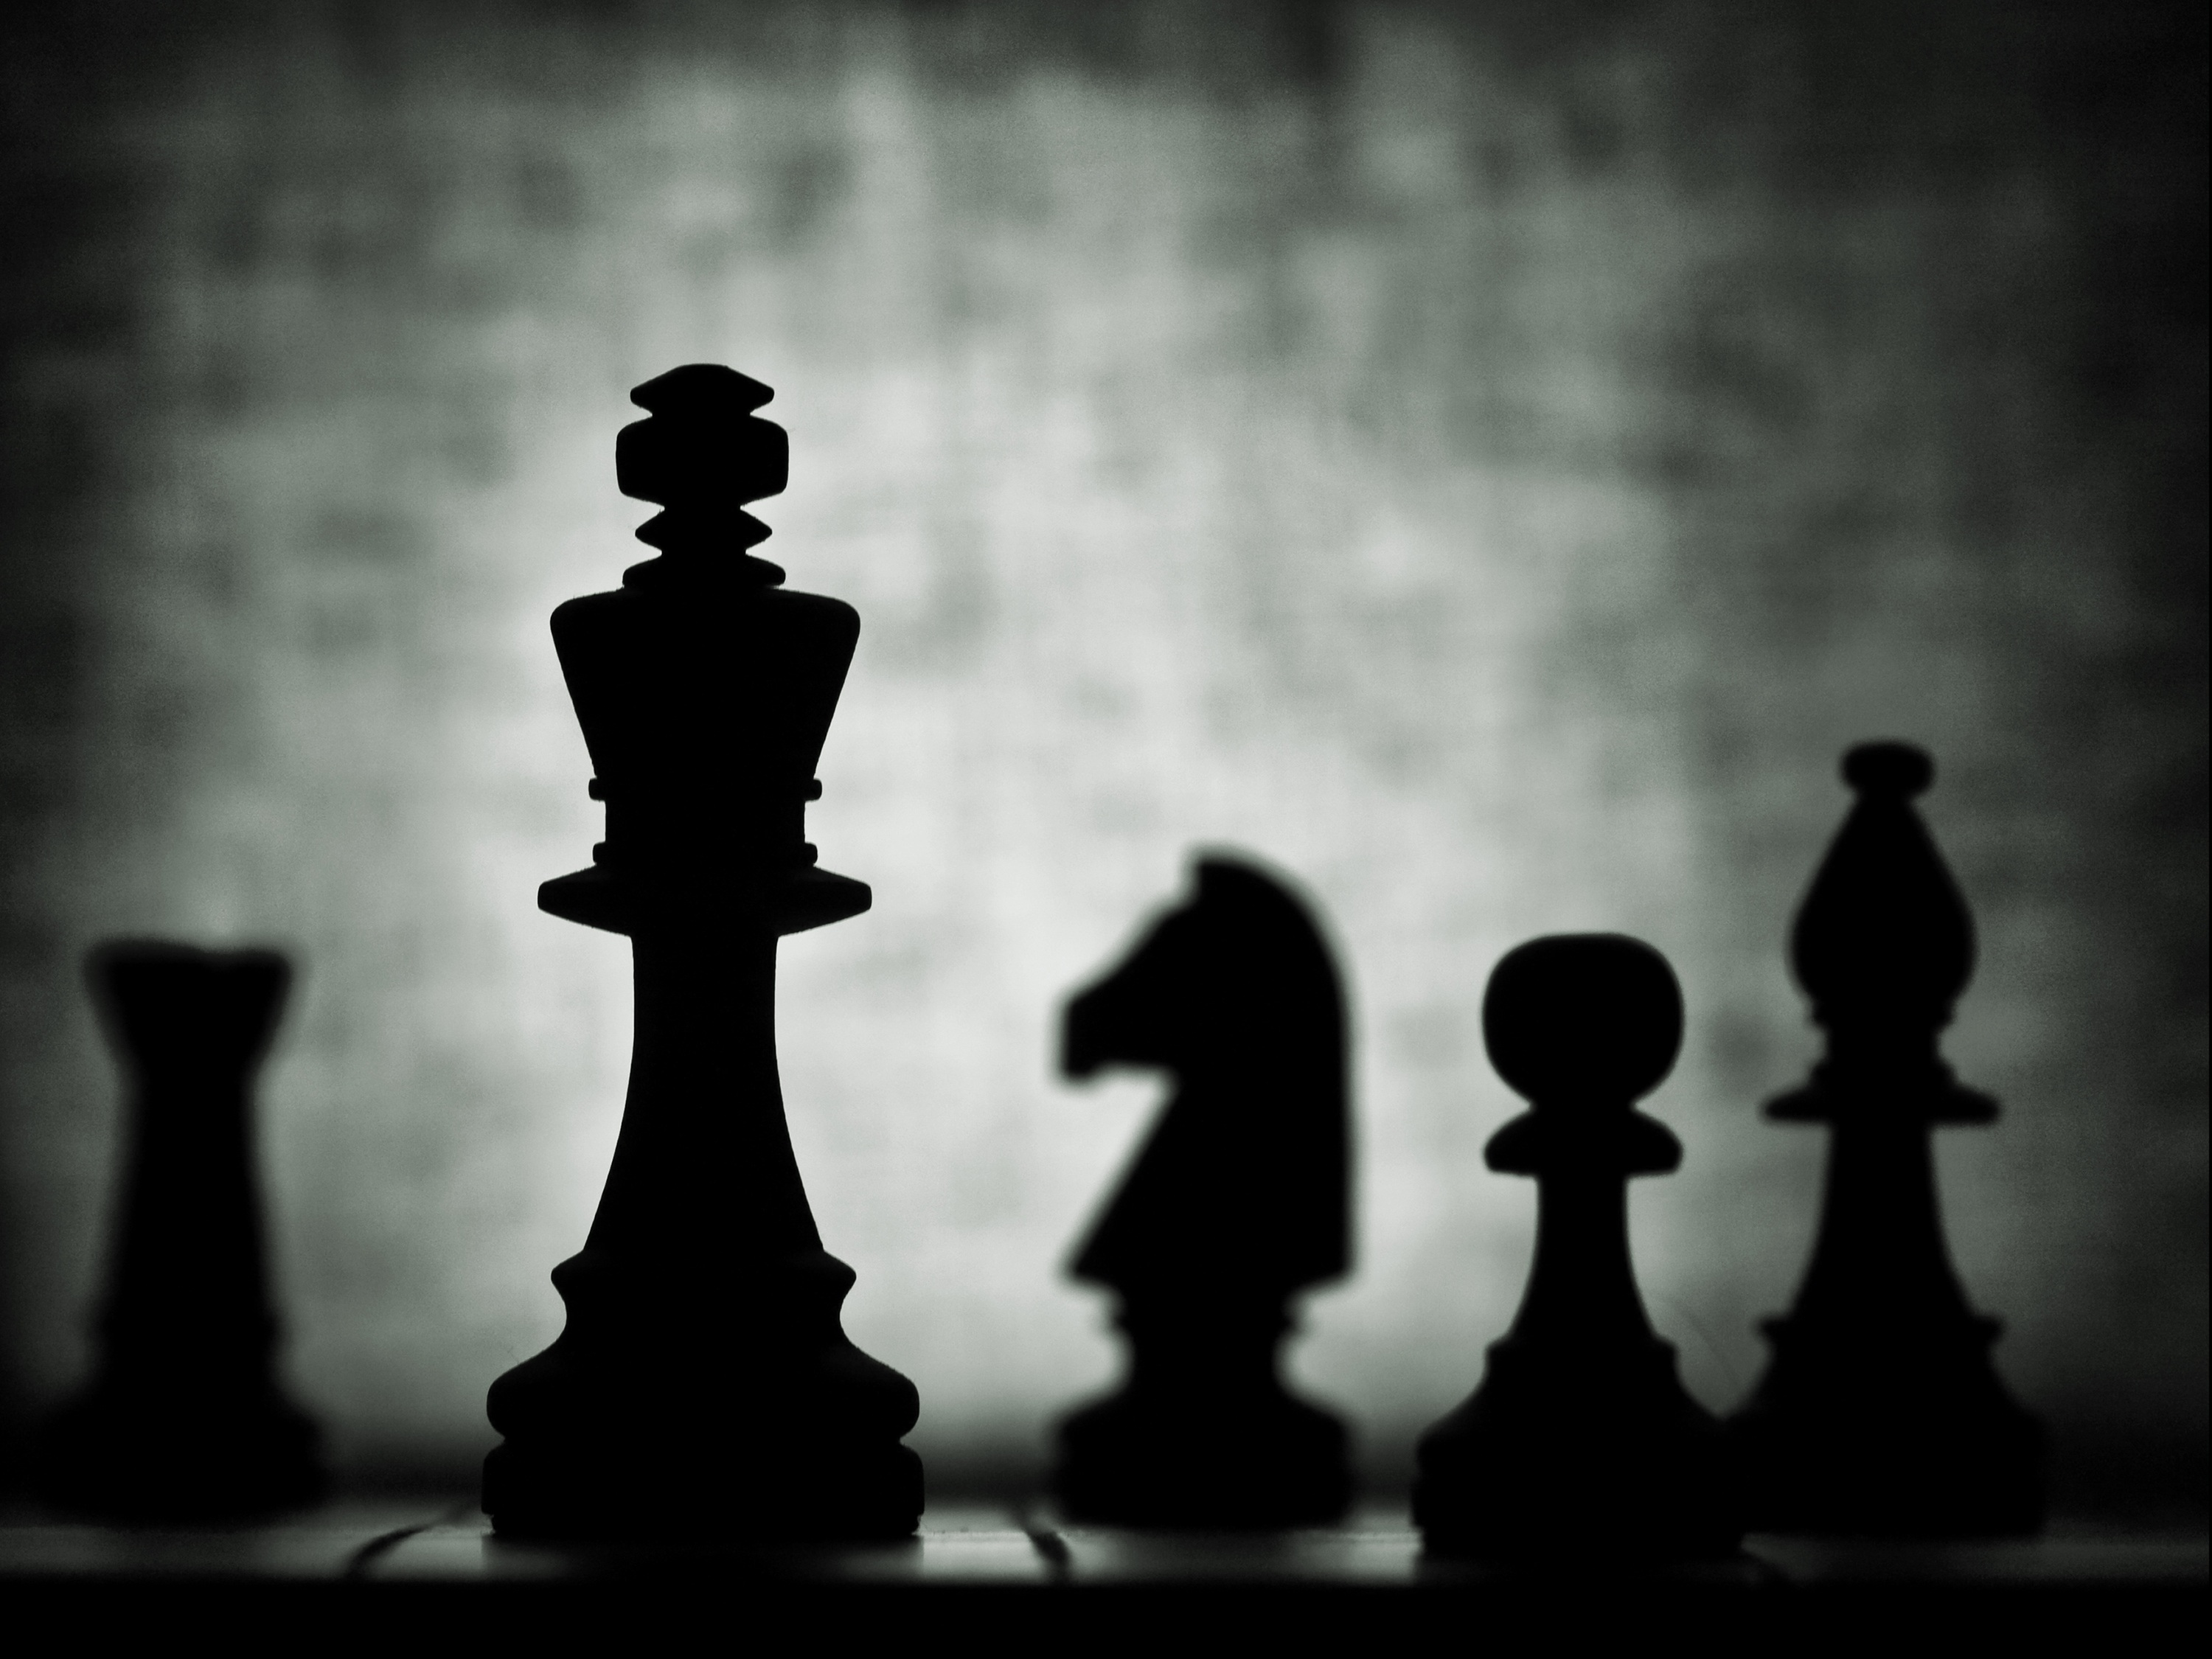 Wallpaper of Game, Chess, Silhouette. King background & HD image